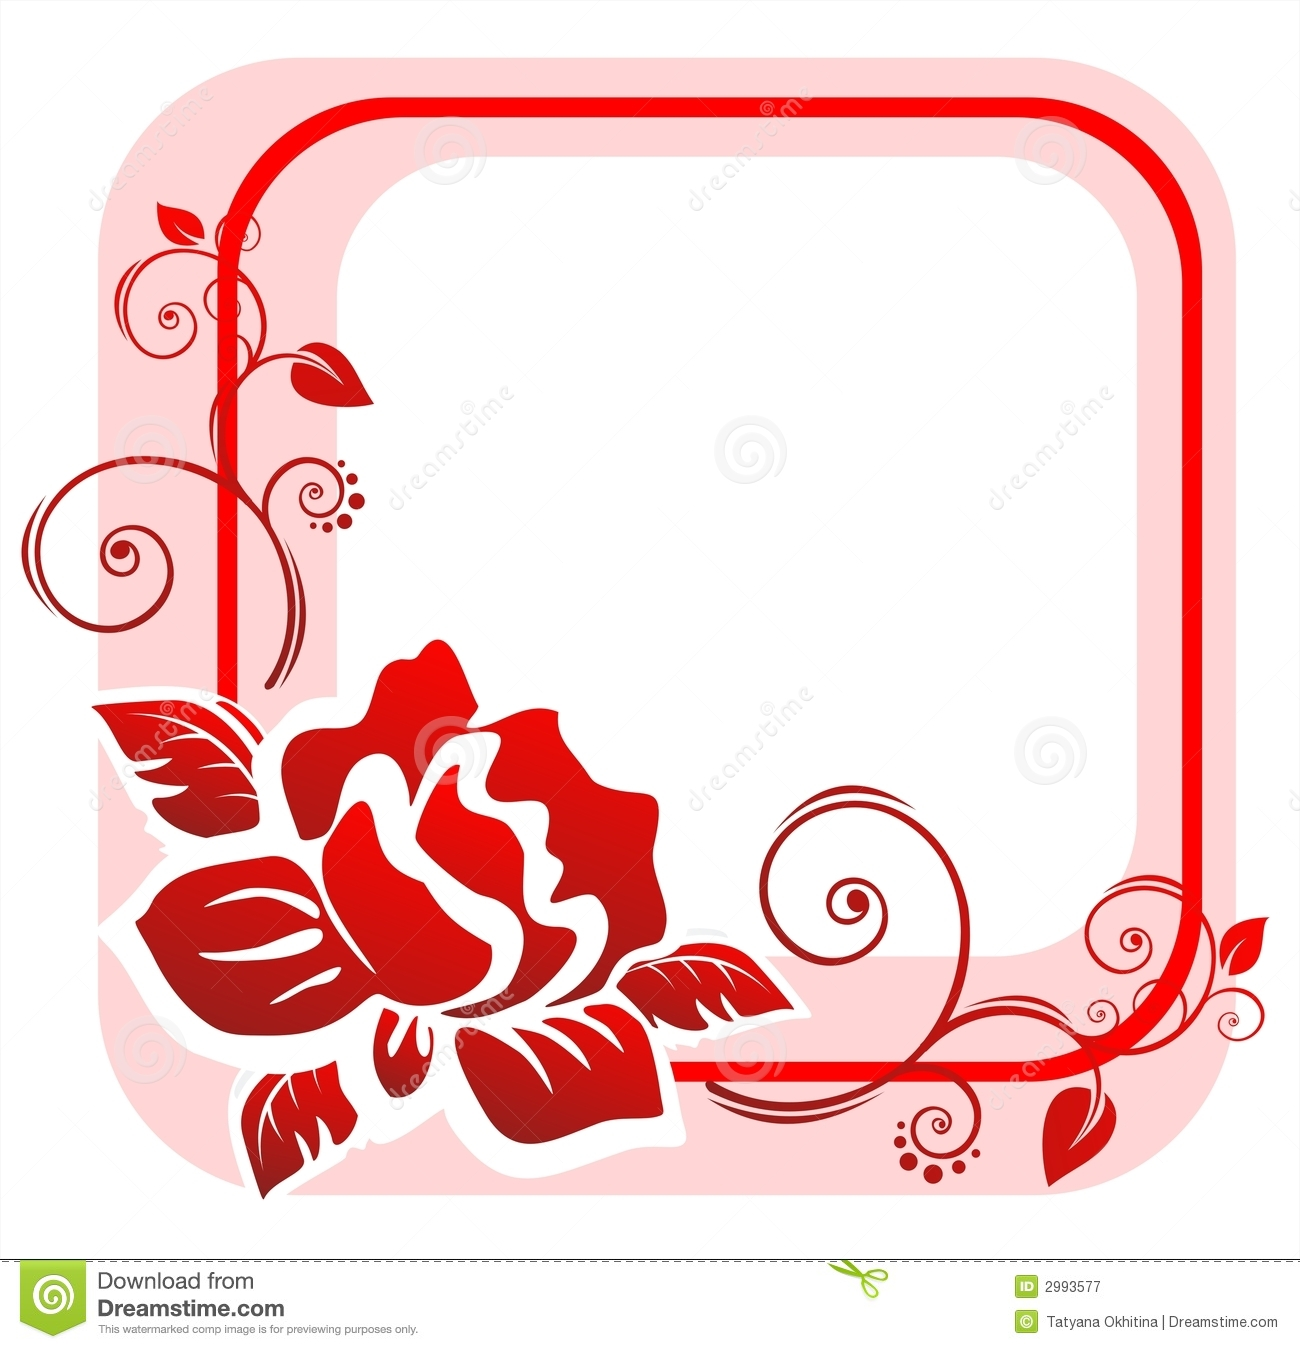 The pink frame from the red stylized rose with decorative curls.